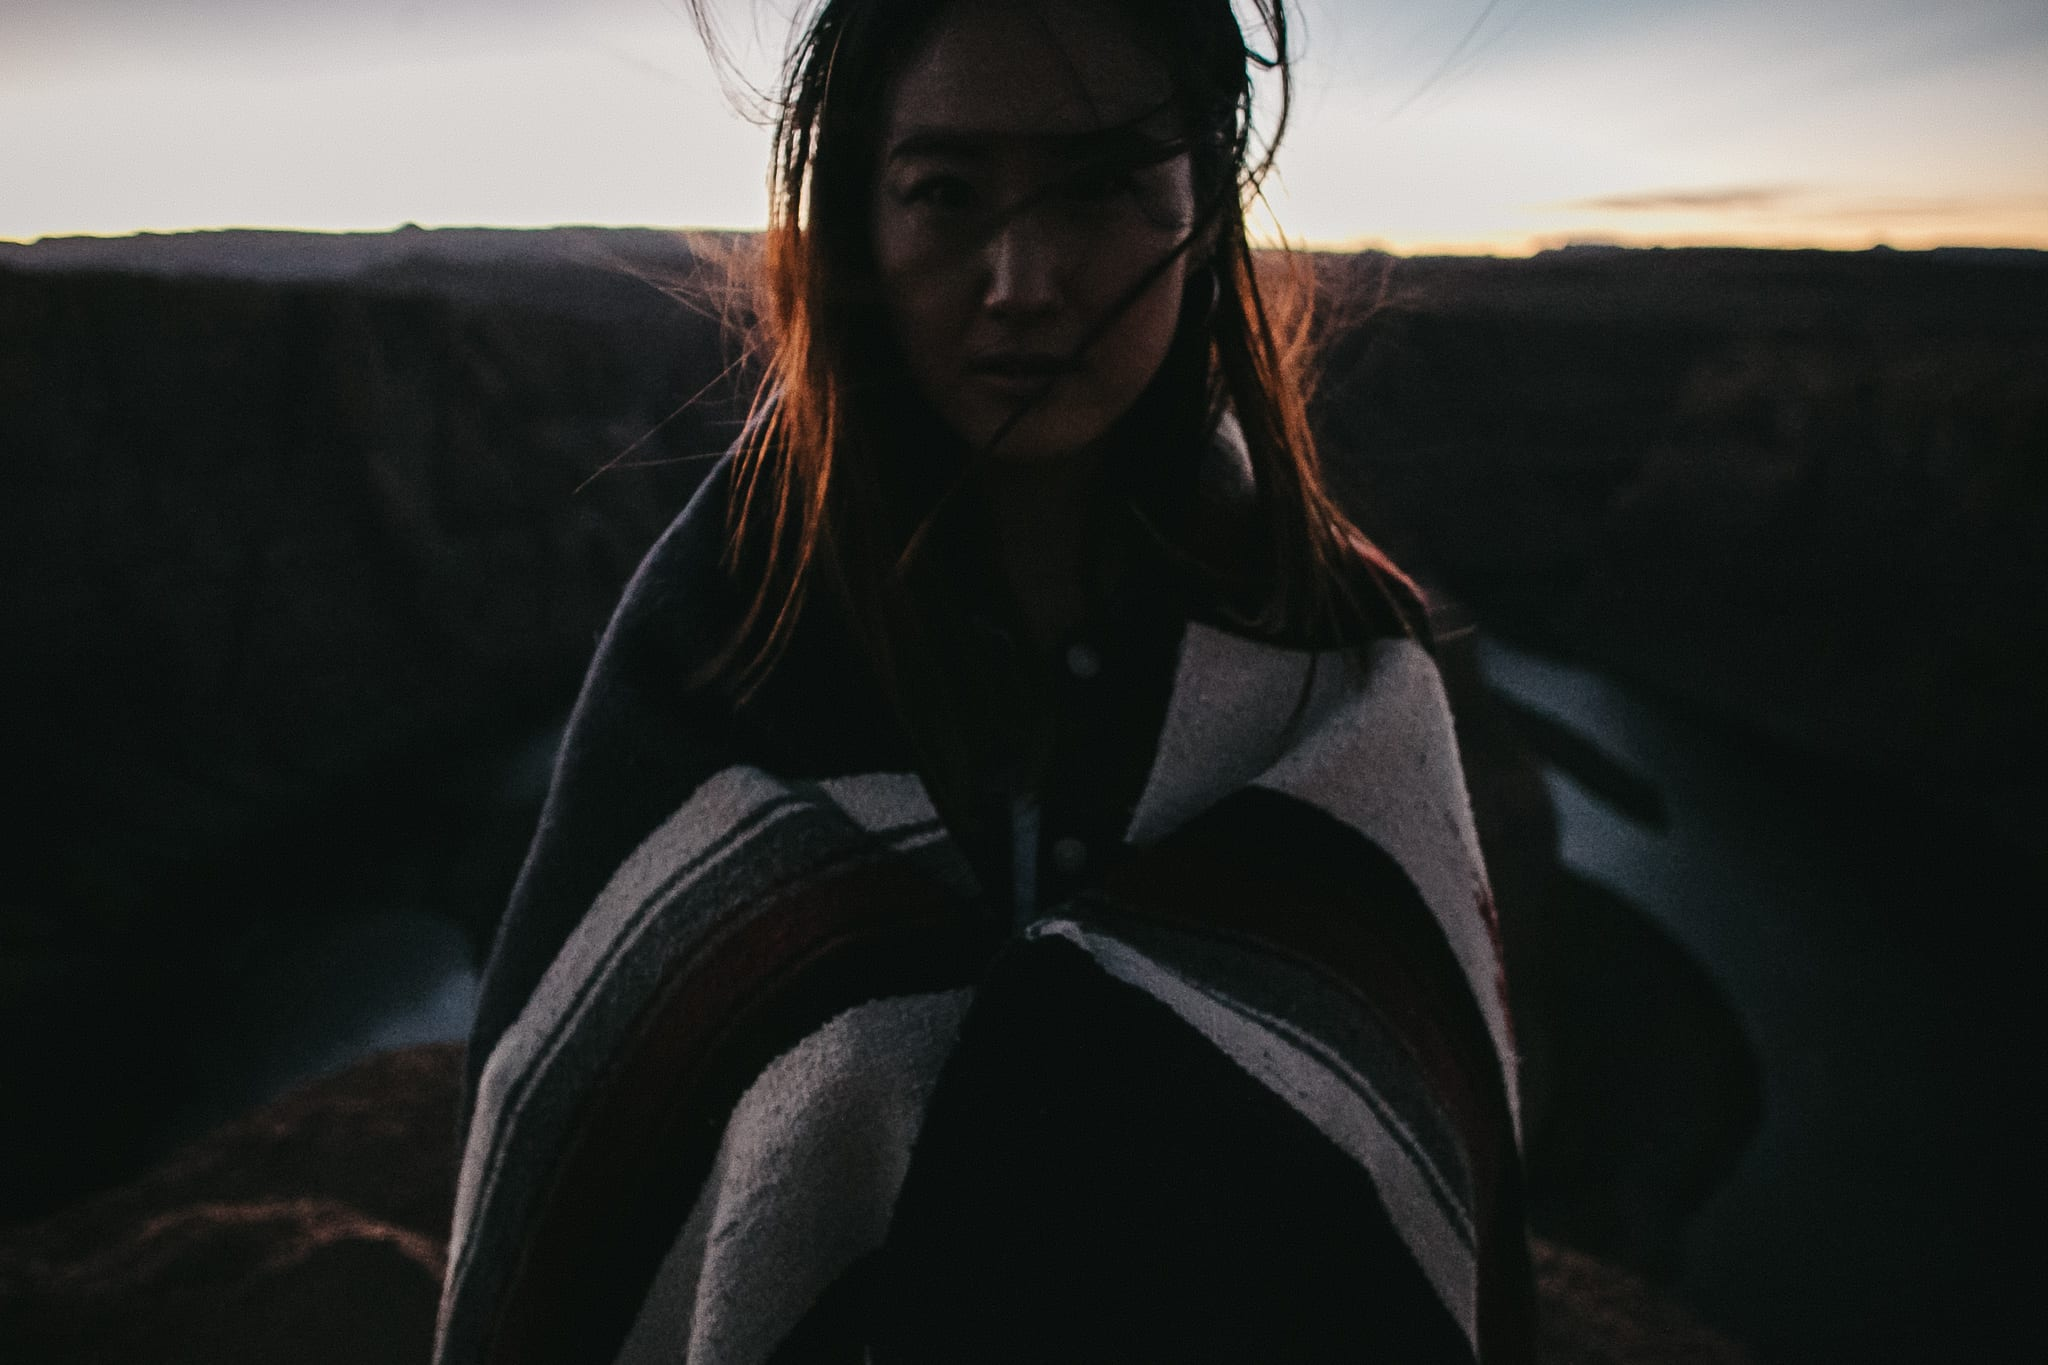 jc2-horseshoe-bend-antelope-cannyon-arizona-lifestyle-portrait-photographer-4